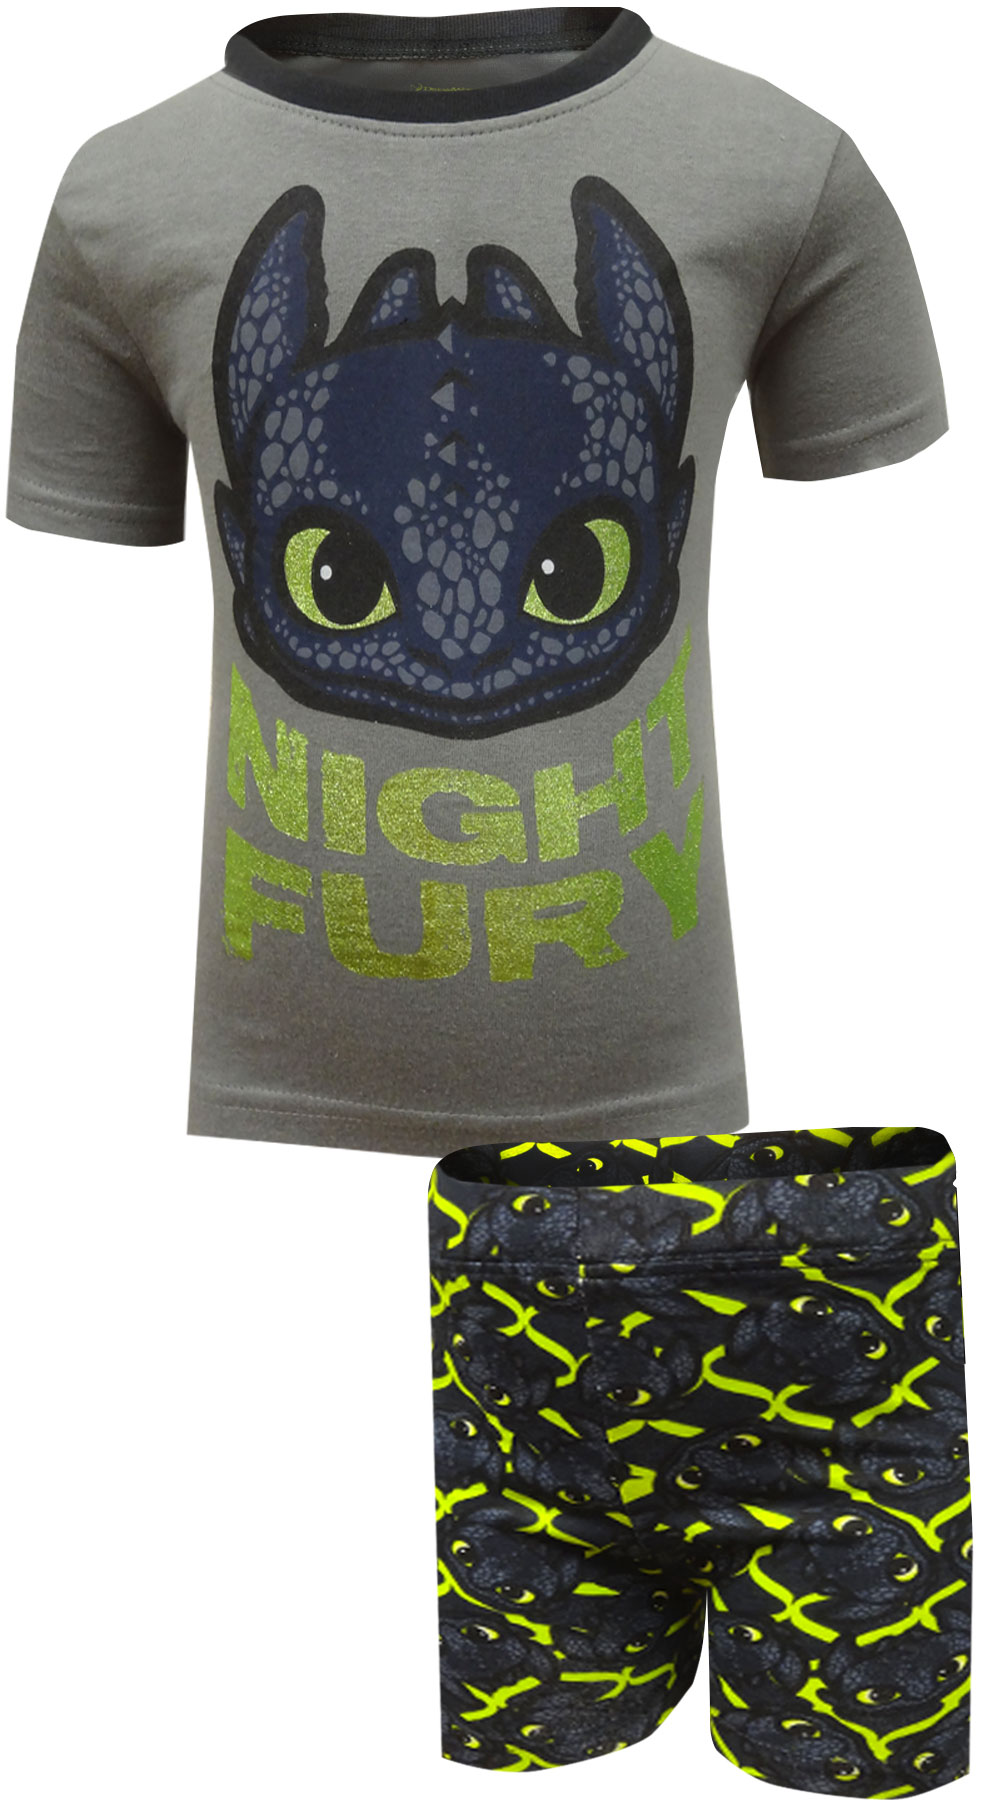 Image of How To Train Your Dragon 2 Cotton Pajama for boys